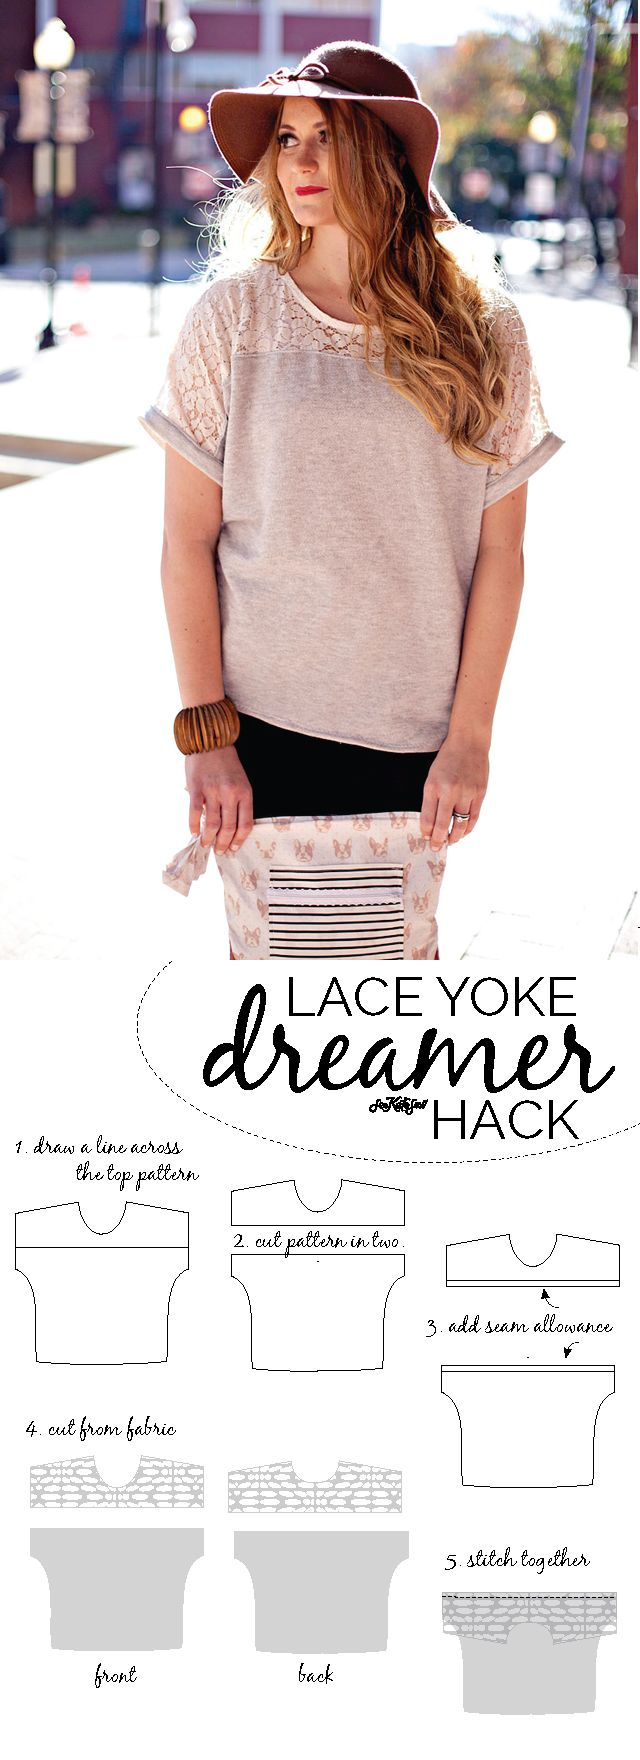 lace yoke top tutorial